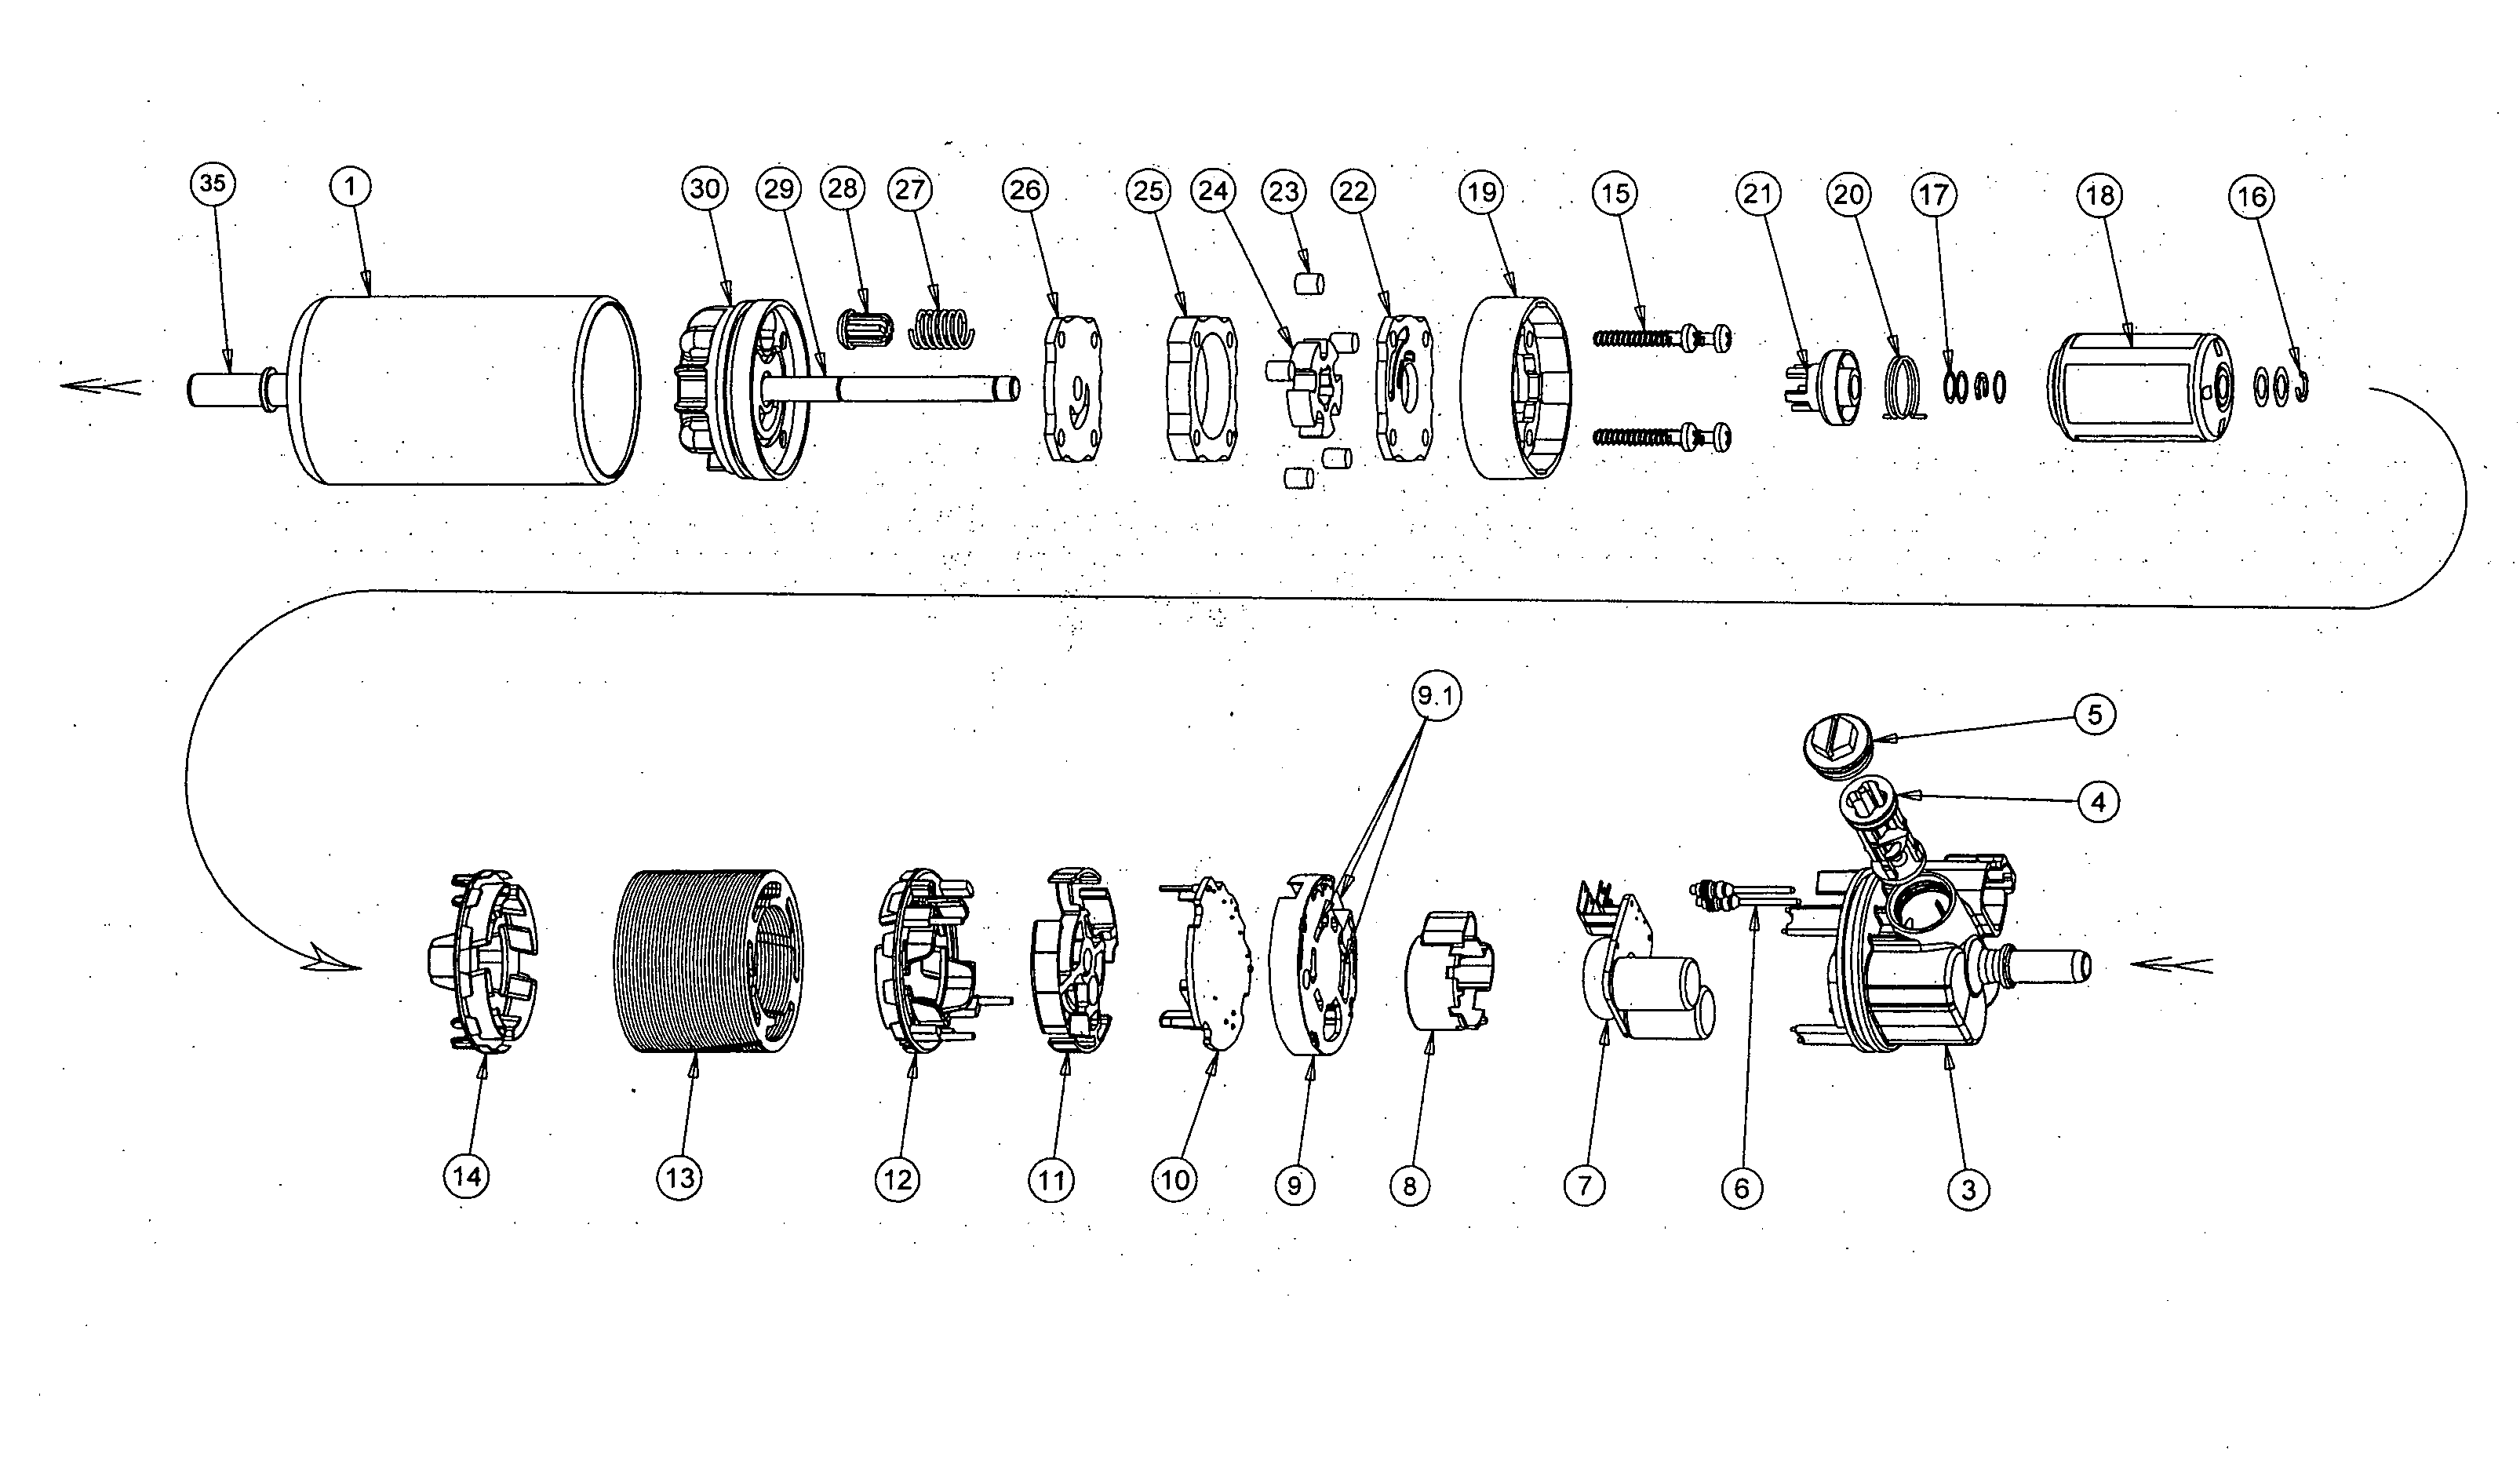 patent us20100229835 - novelty in electric fuel pumps for internal combustion engines